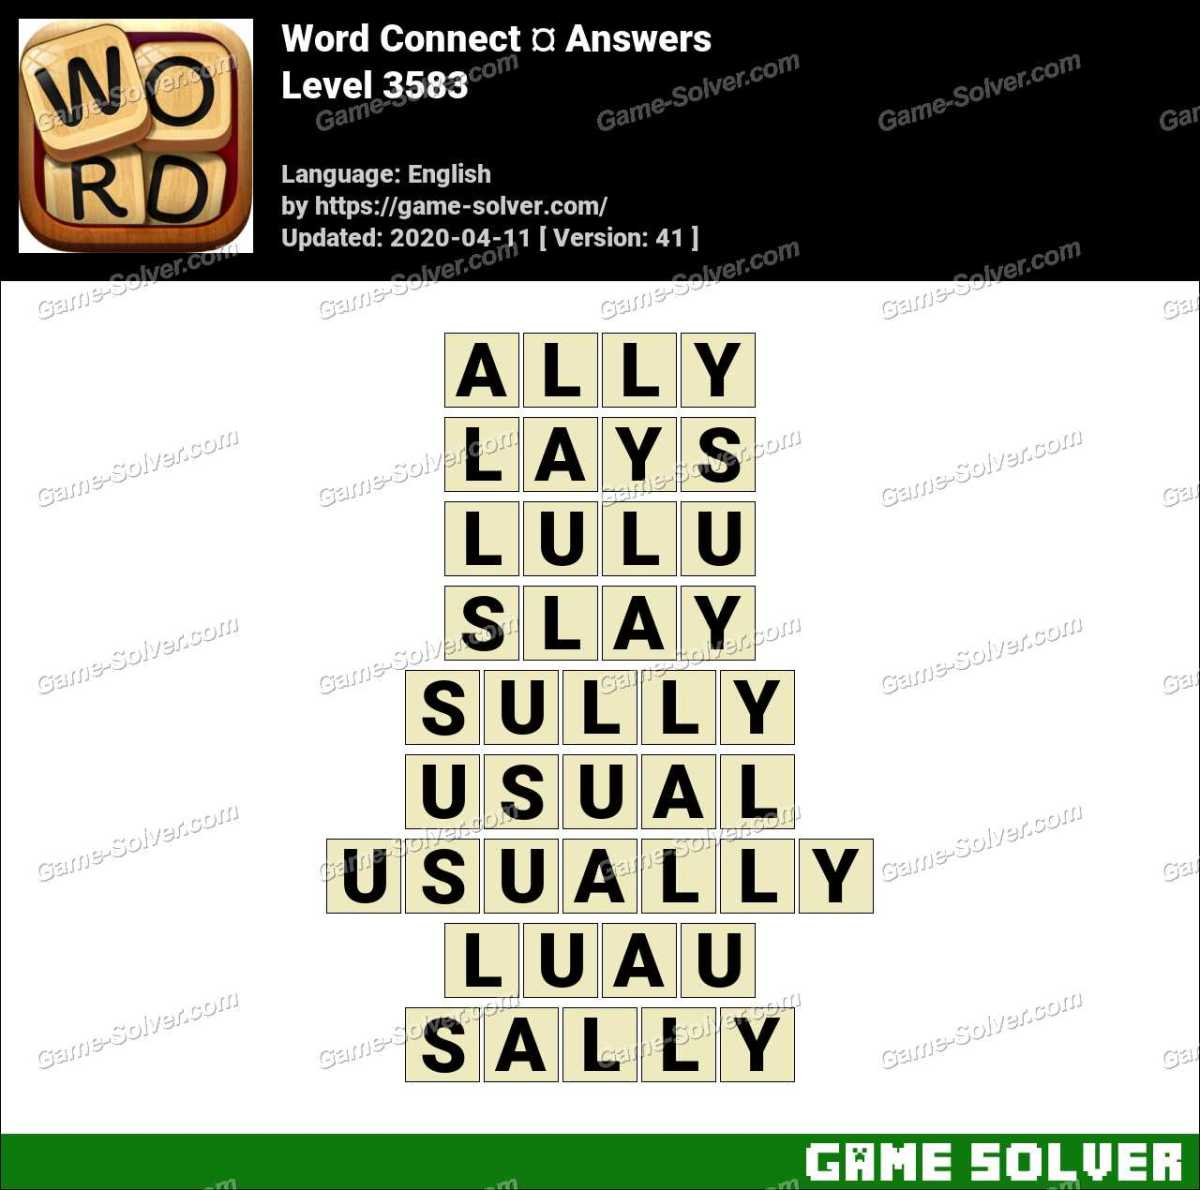 Word Connect Level 3583 Answers